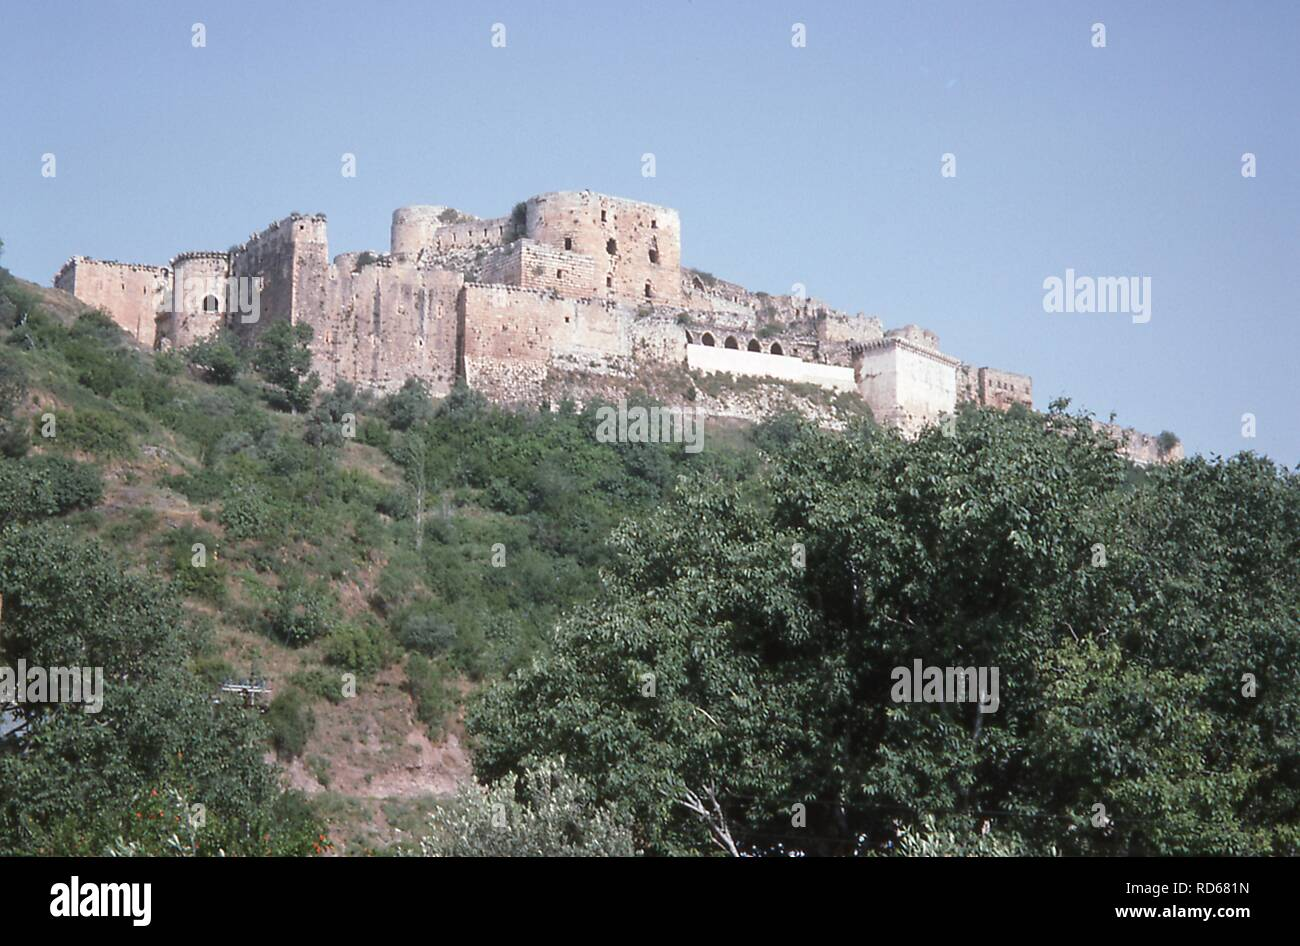 View of the medieval fortress of Qalaat al-Madiq, near the ancient city of Apamea, Syria, June, 1994. () - Stock Image